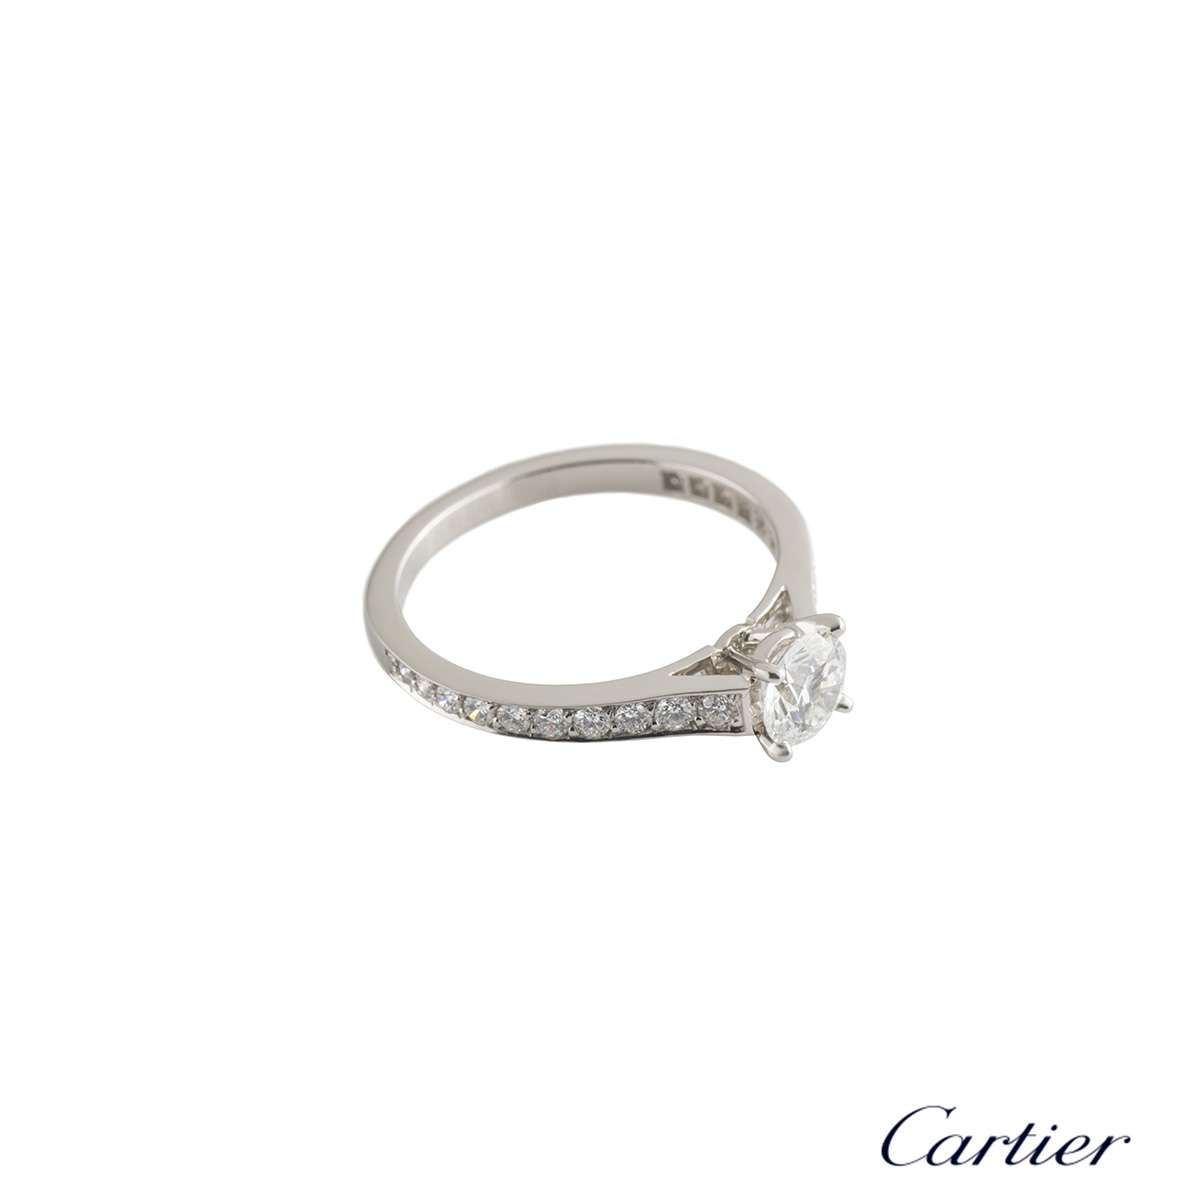 Cartier Platinum Diamond 1895 Solitaire Ring 0.44ct E/VS1 Size 49 N4164649